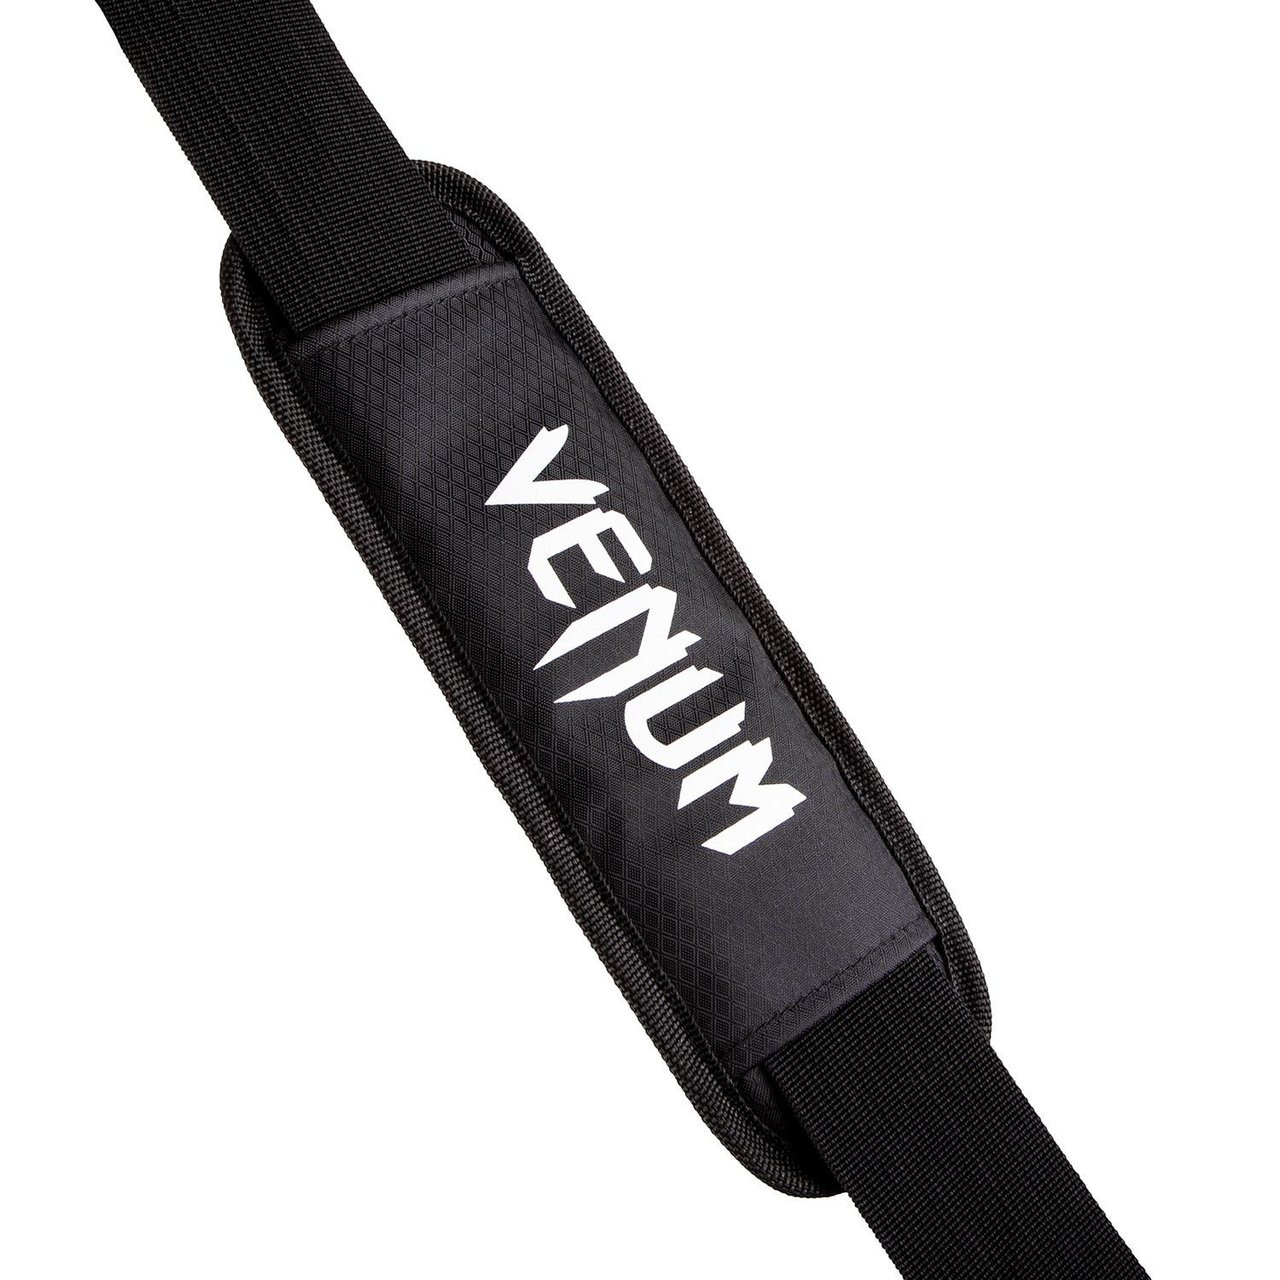 handle of the Venum Sparring Sports Bag  in Black on White available at www.thejiujitsushop.com  Enjoy Free Shipping from The Jiu Jitsu Shop